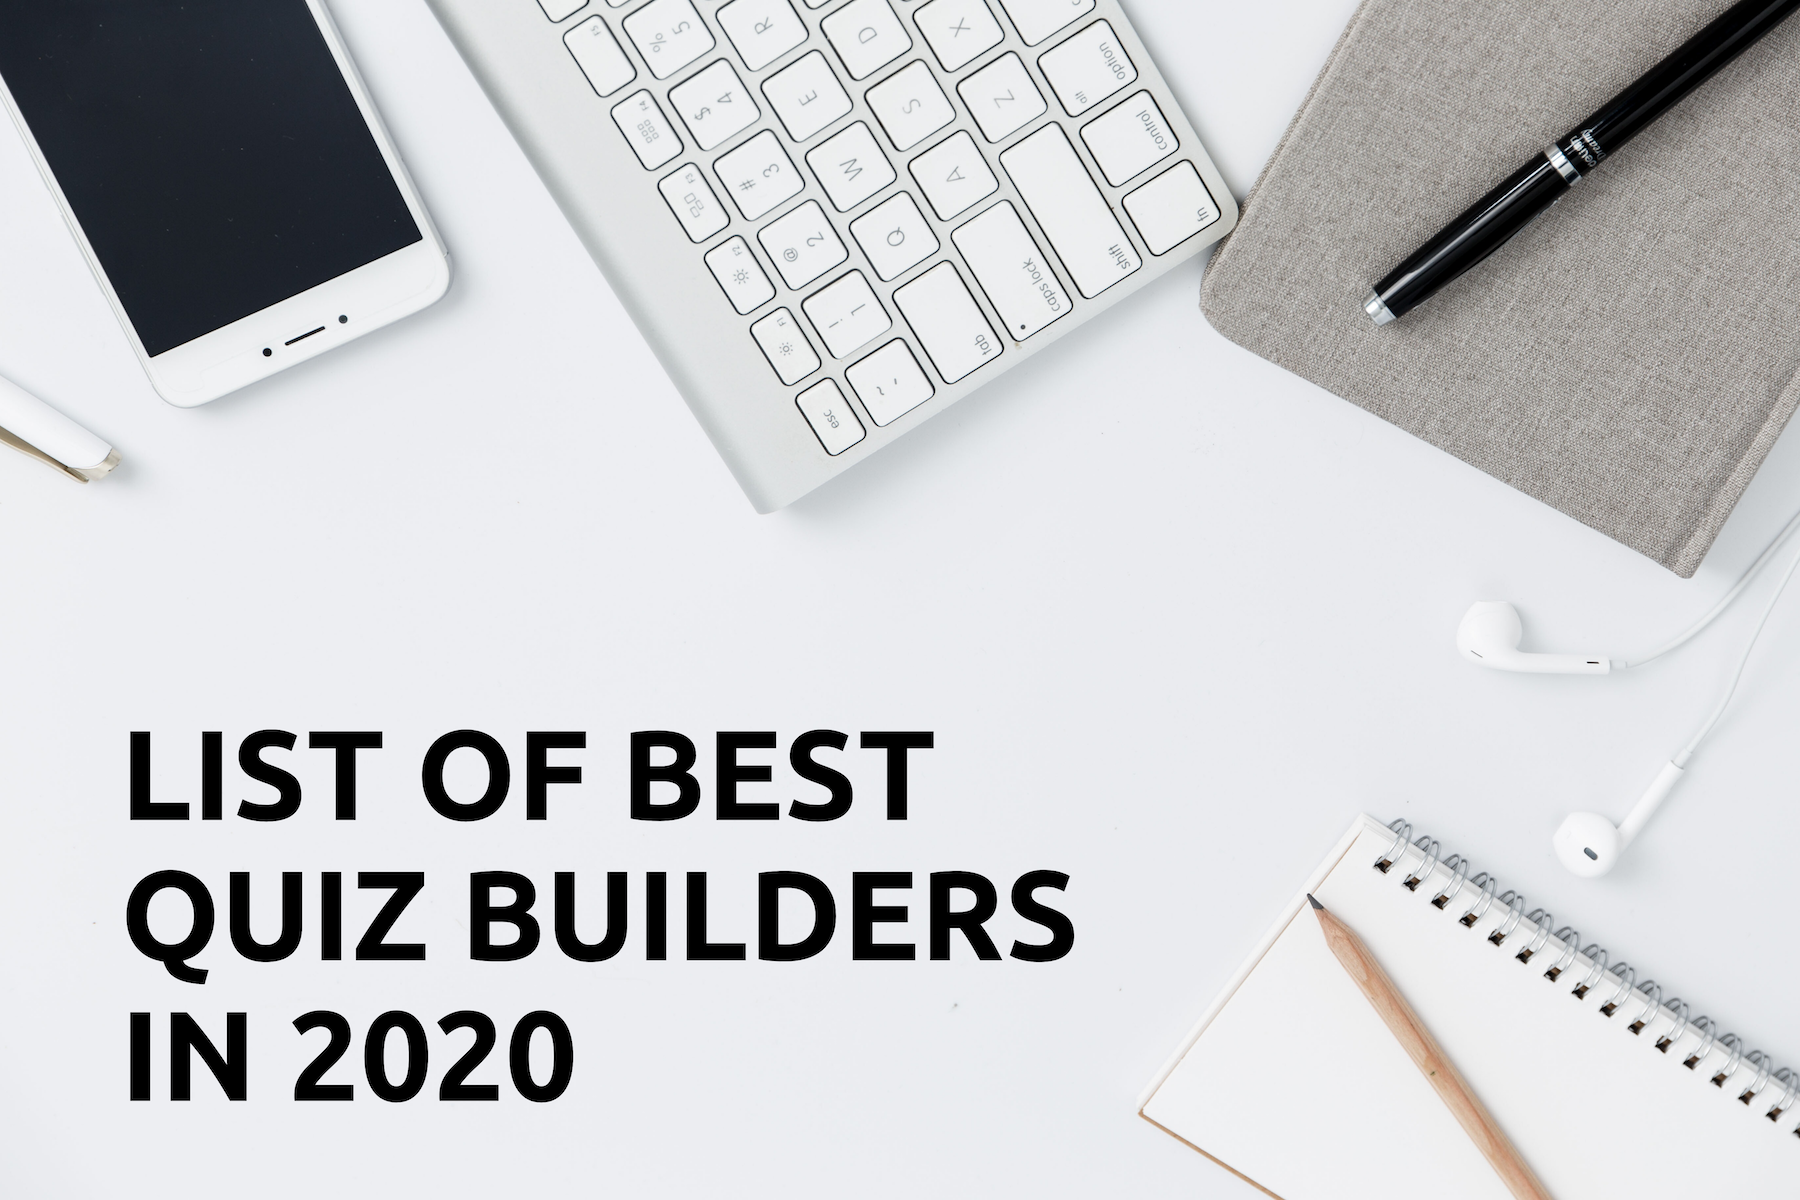 BEST QUIZ BUILDERS IN 2020